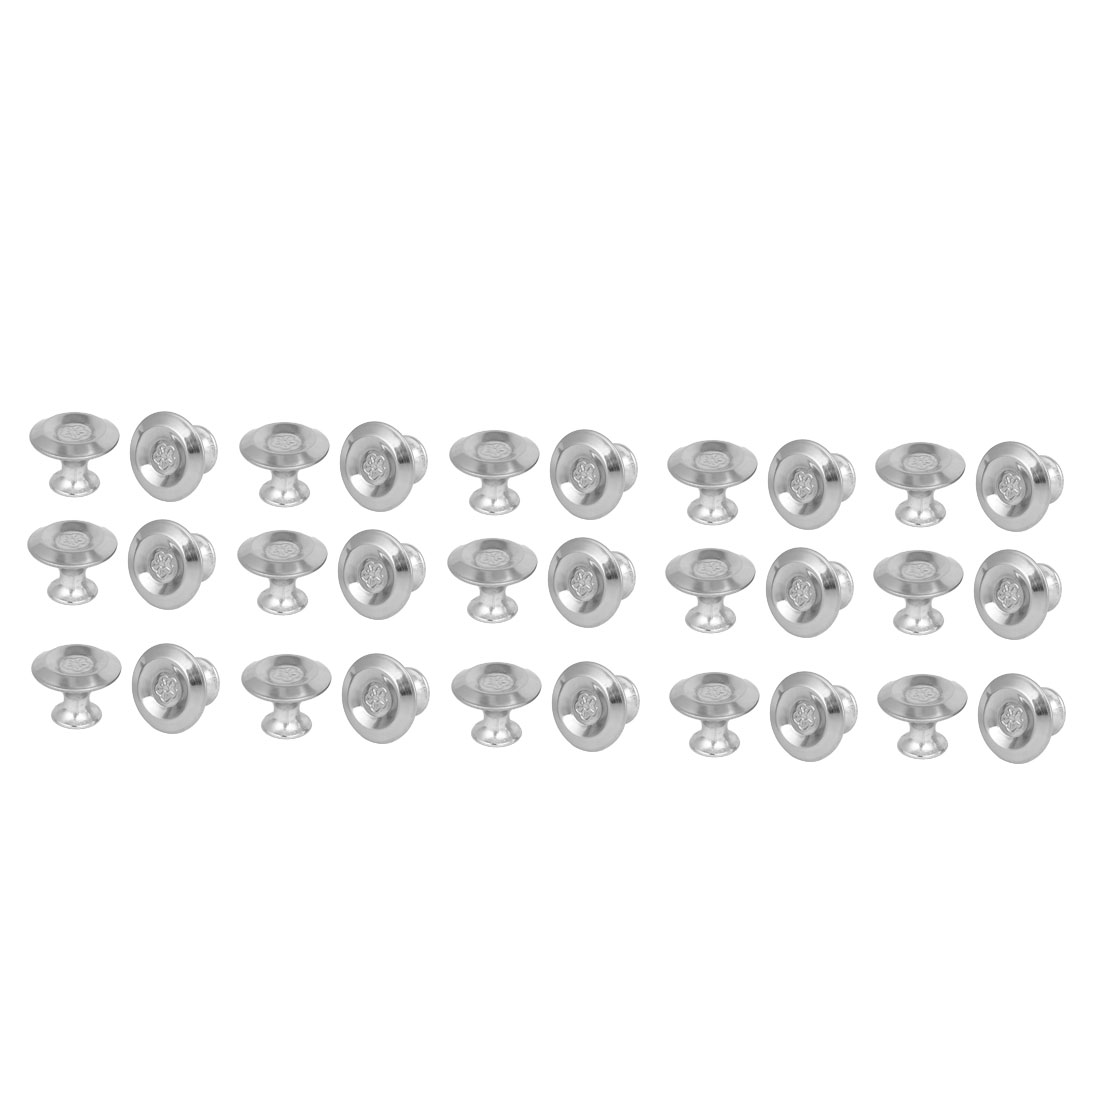 Cabinet Drawer Metal Single Hole Flower Pattern Pull Knobs 27.5mmx20mm 30pcs